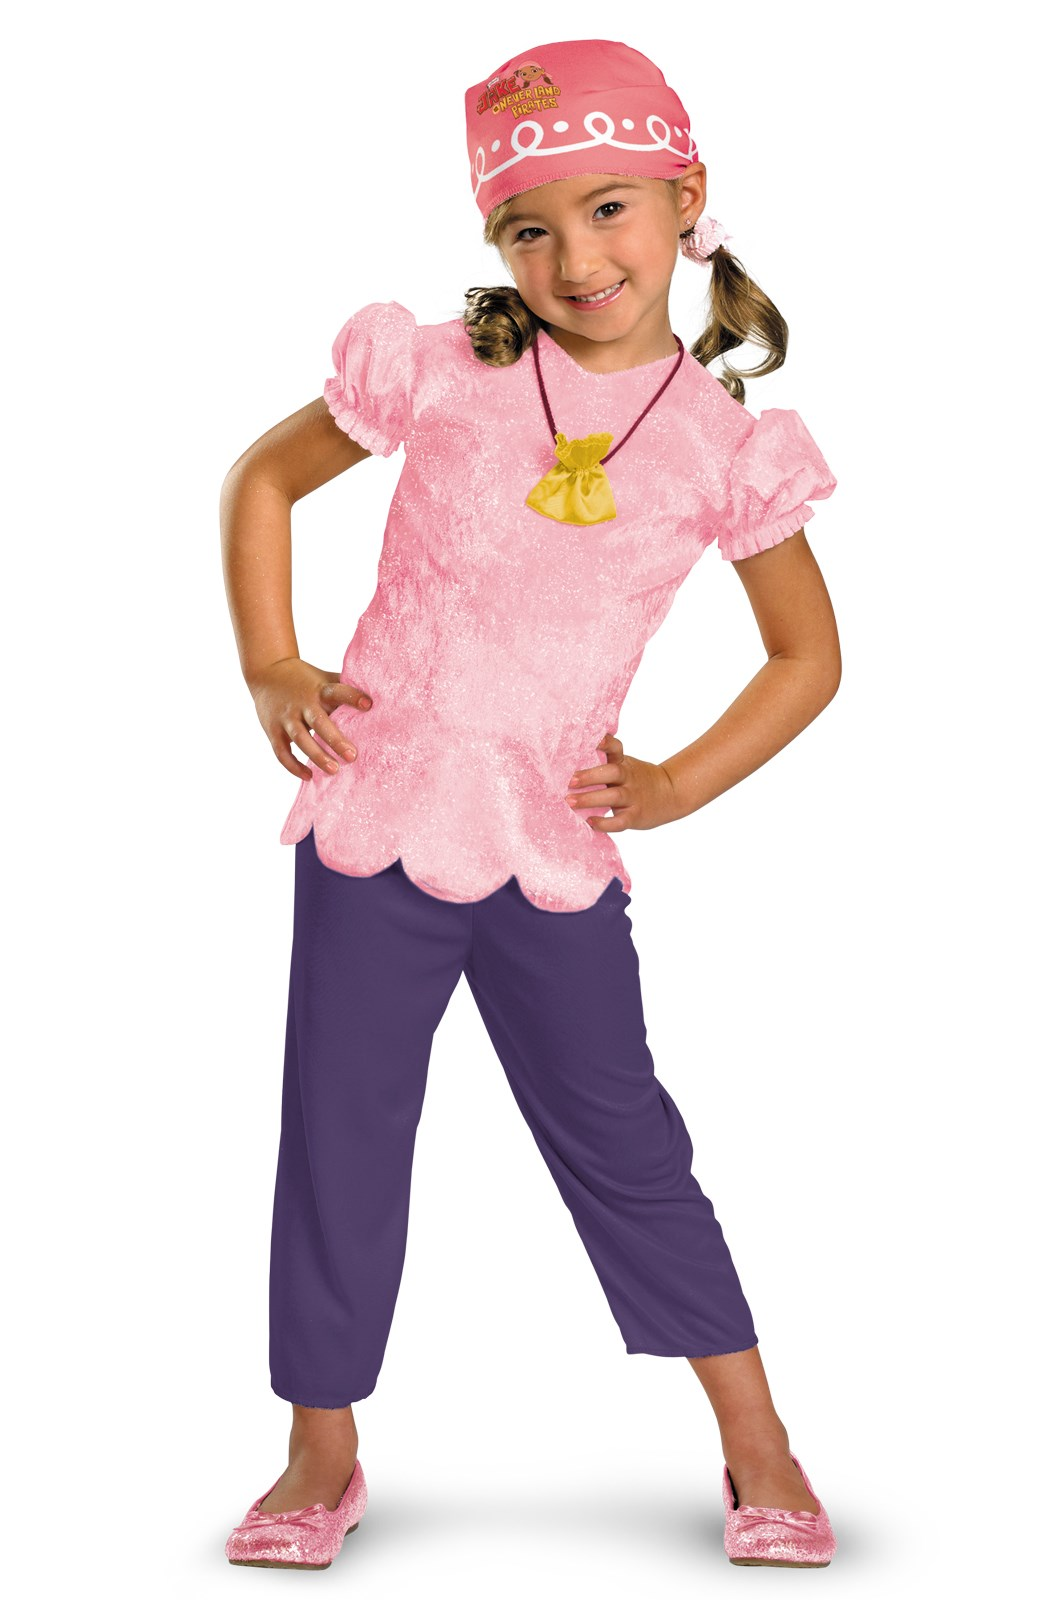 Disney Jake and the Never Land Pirates Izzy Classic Kids Costume 4/6x